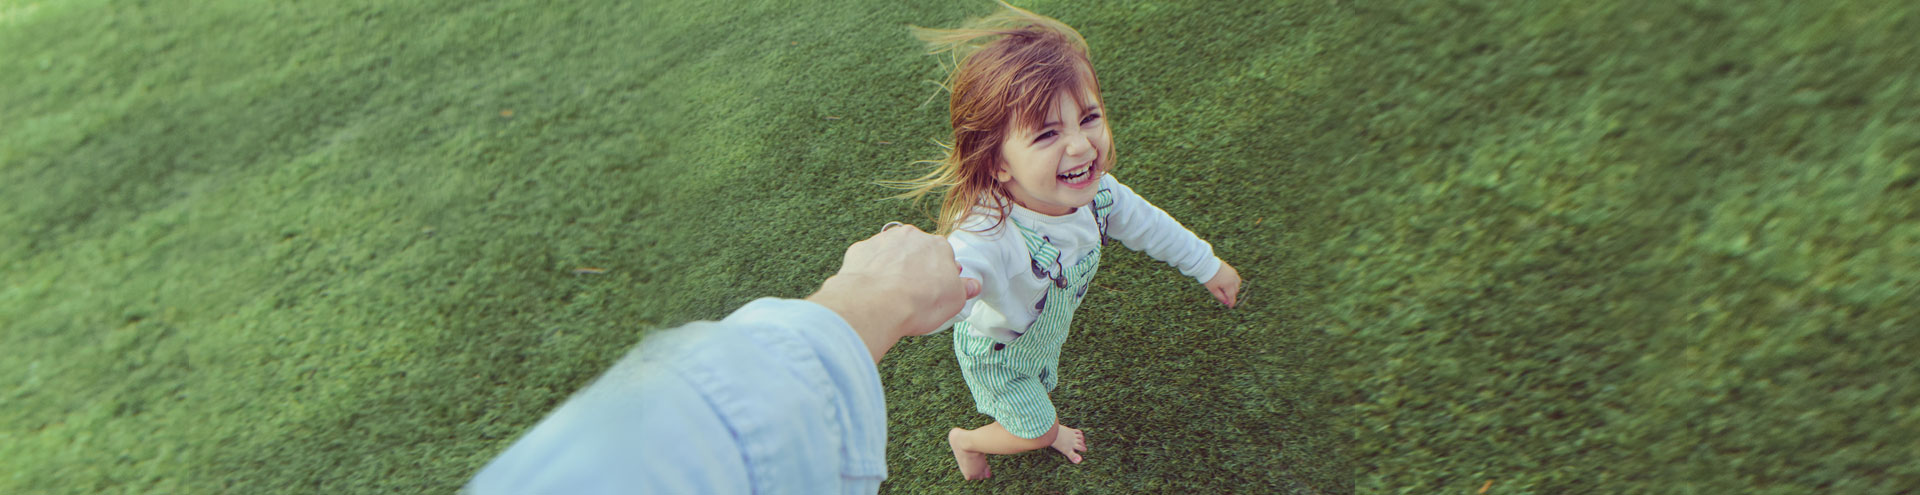 A little girl running in the grass holding her parents hand.